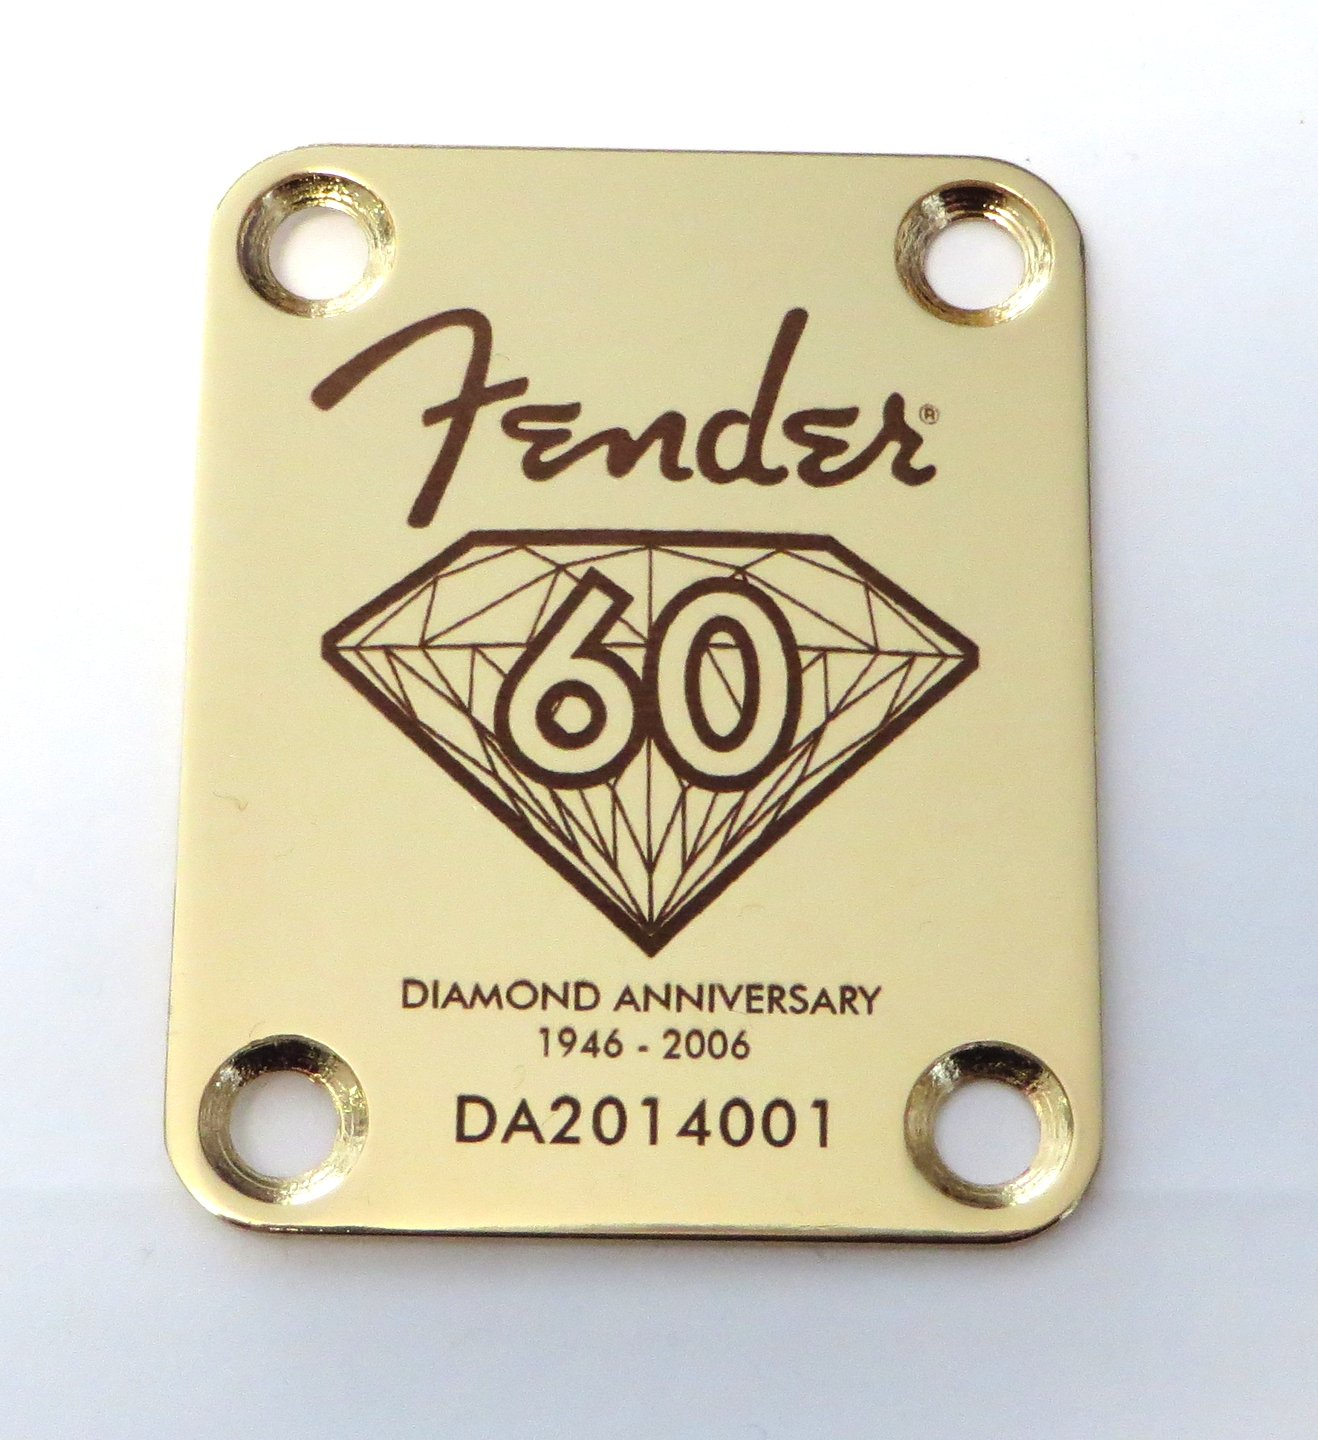 Fender Diamond 60th Anniversary Custom Engraved Neck Plate - Gold LazrArt 4334370499